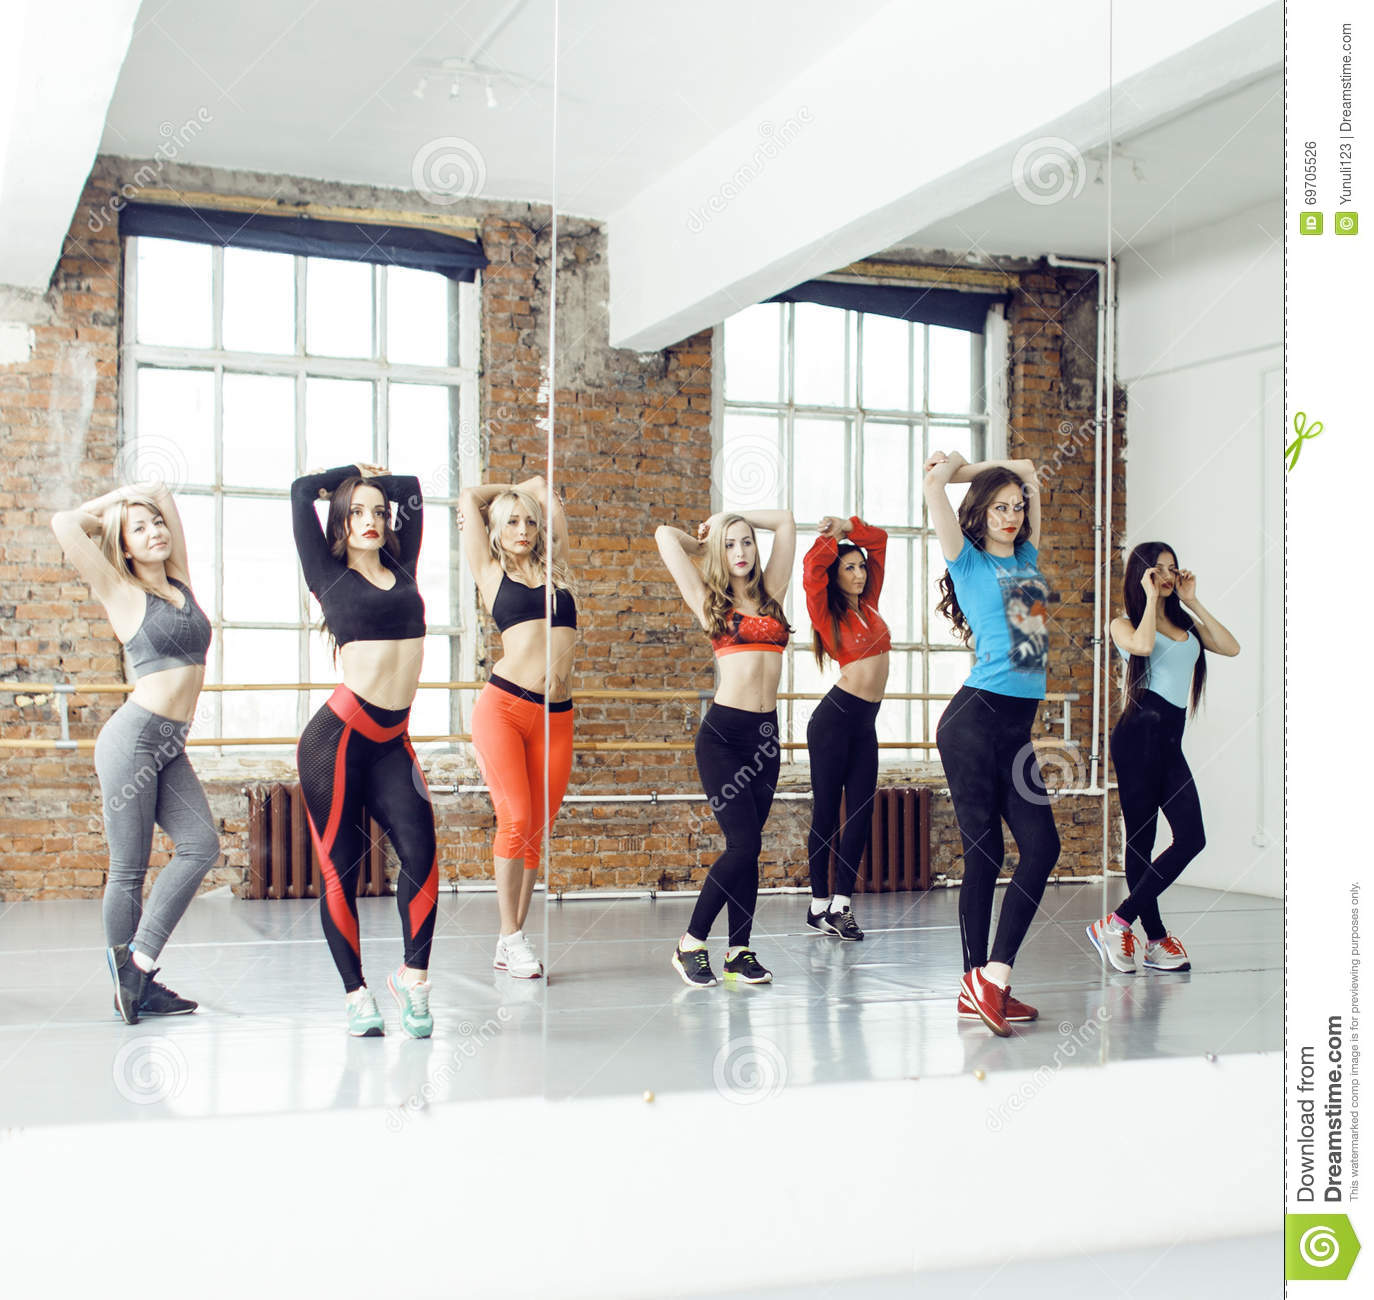 Women Doing Sport In Gym Healthcare Lifestyle People Concept